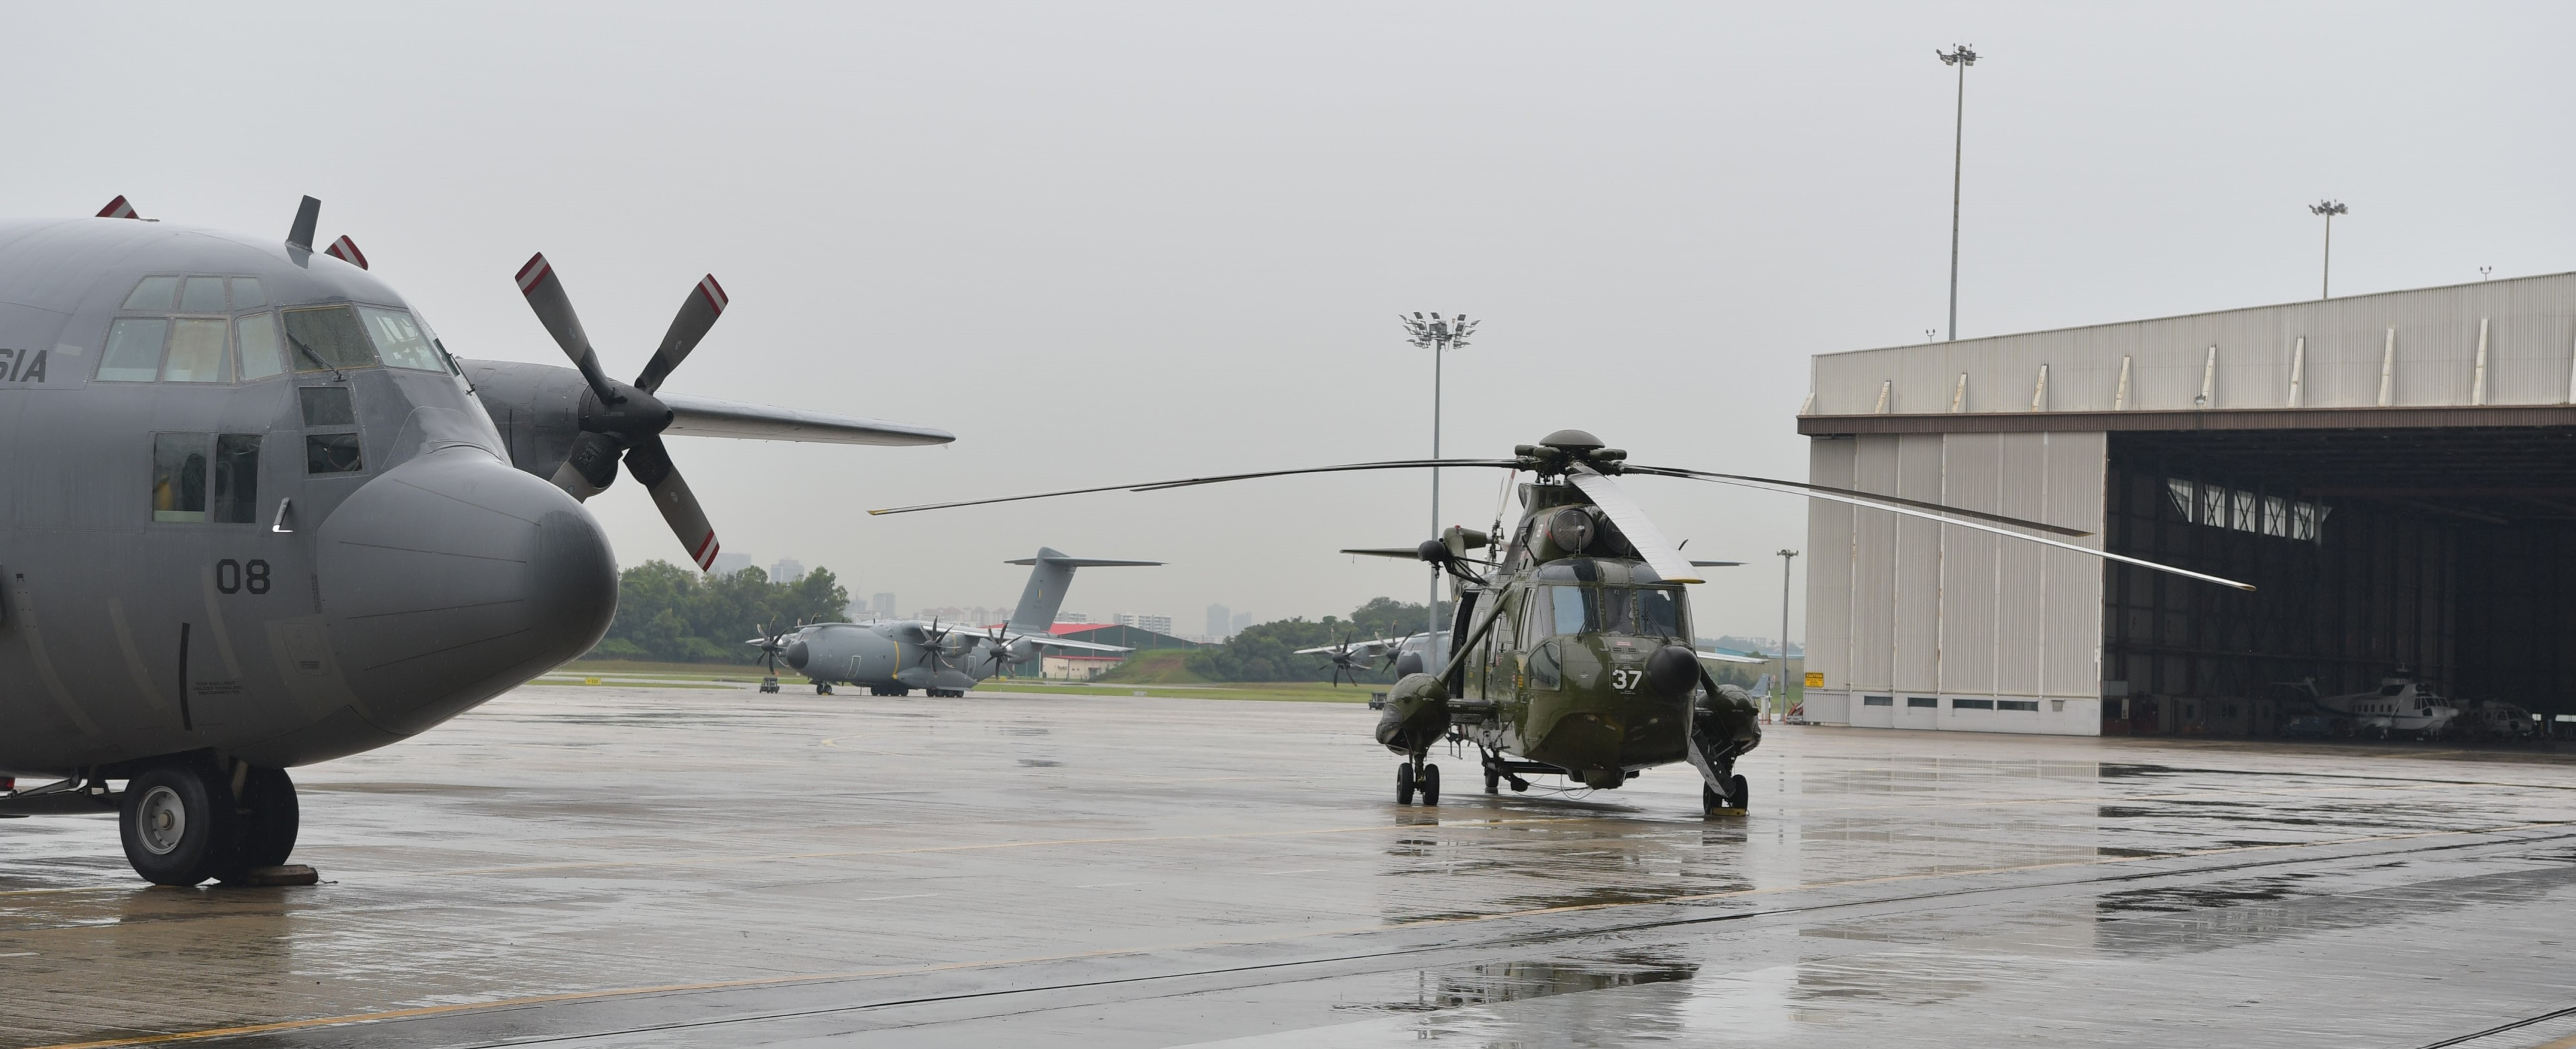 helicopter nuri with Rmaf Upgrades On Track on Perak Malaysia 2 June 2016 Sikorsky 447116083 further Supersonic Particle Deposition As Potential Corrosion Treatment Method For Helicopter Part In Malaysia moreover Tudm Sikorsky S 614a Nuri in addition Iraqi Helicopter Shot Down In Clash With Militants Officials Say further Barzani abdden apache helikopter aliyor 1092203.